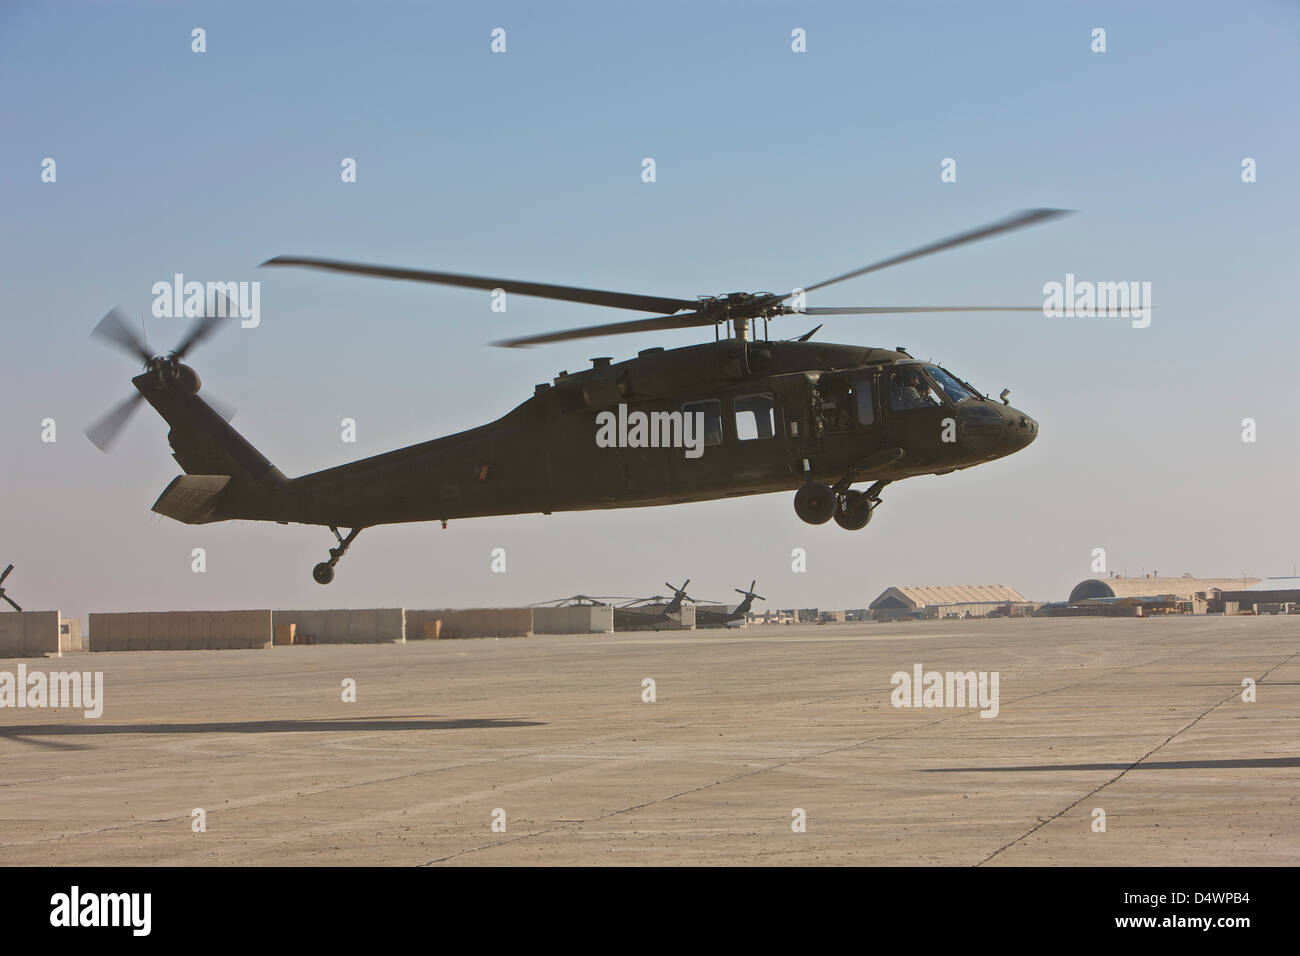 A UH-60 Black Hawk helicopter landing at a military base in Iraq. - Stock Image